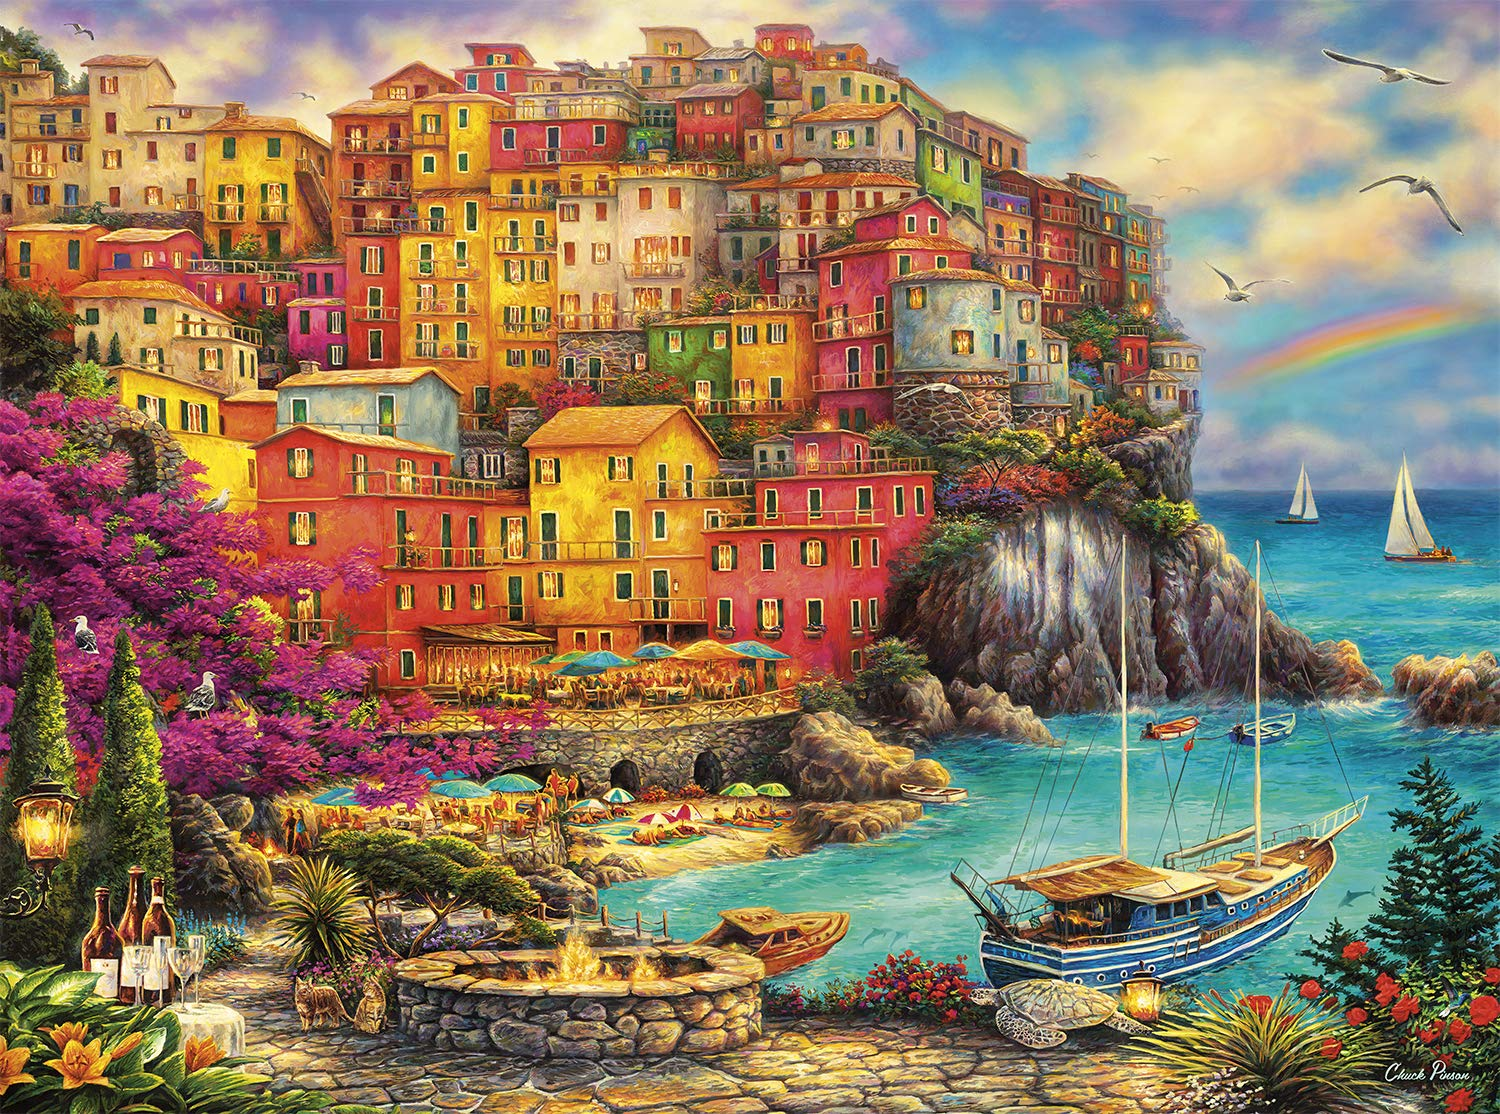 Buffalo Games - Chuck Pinson - A Beautiful Day at Cinque Terre - 1000 Piece Jigsaw Puzzle